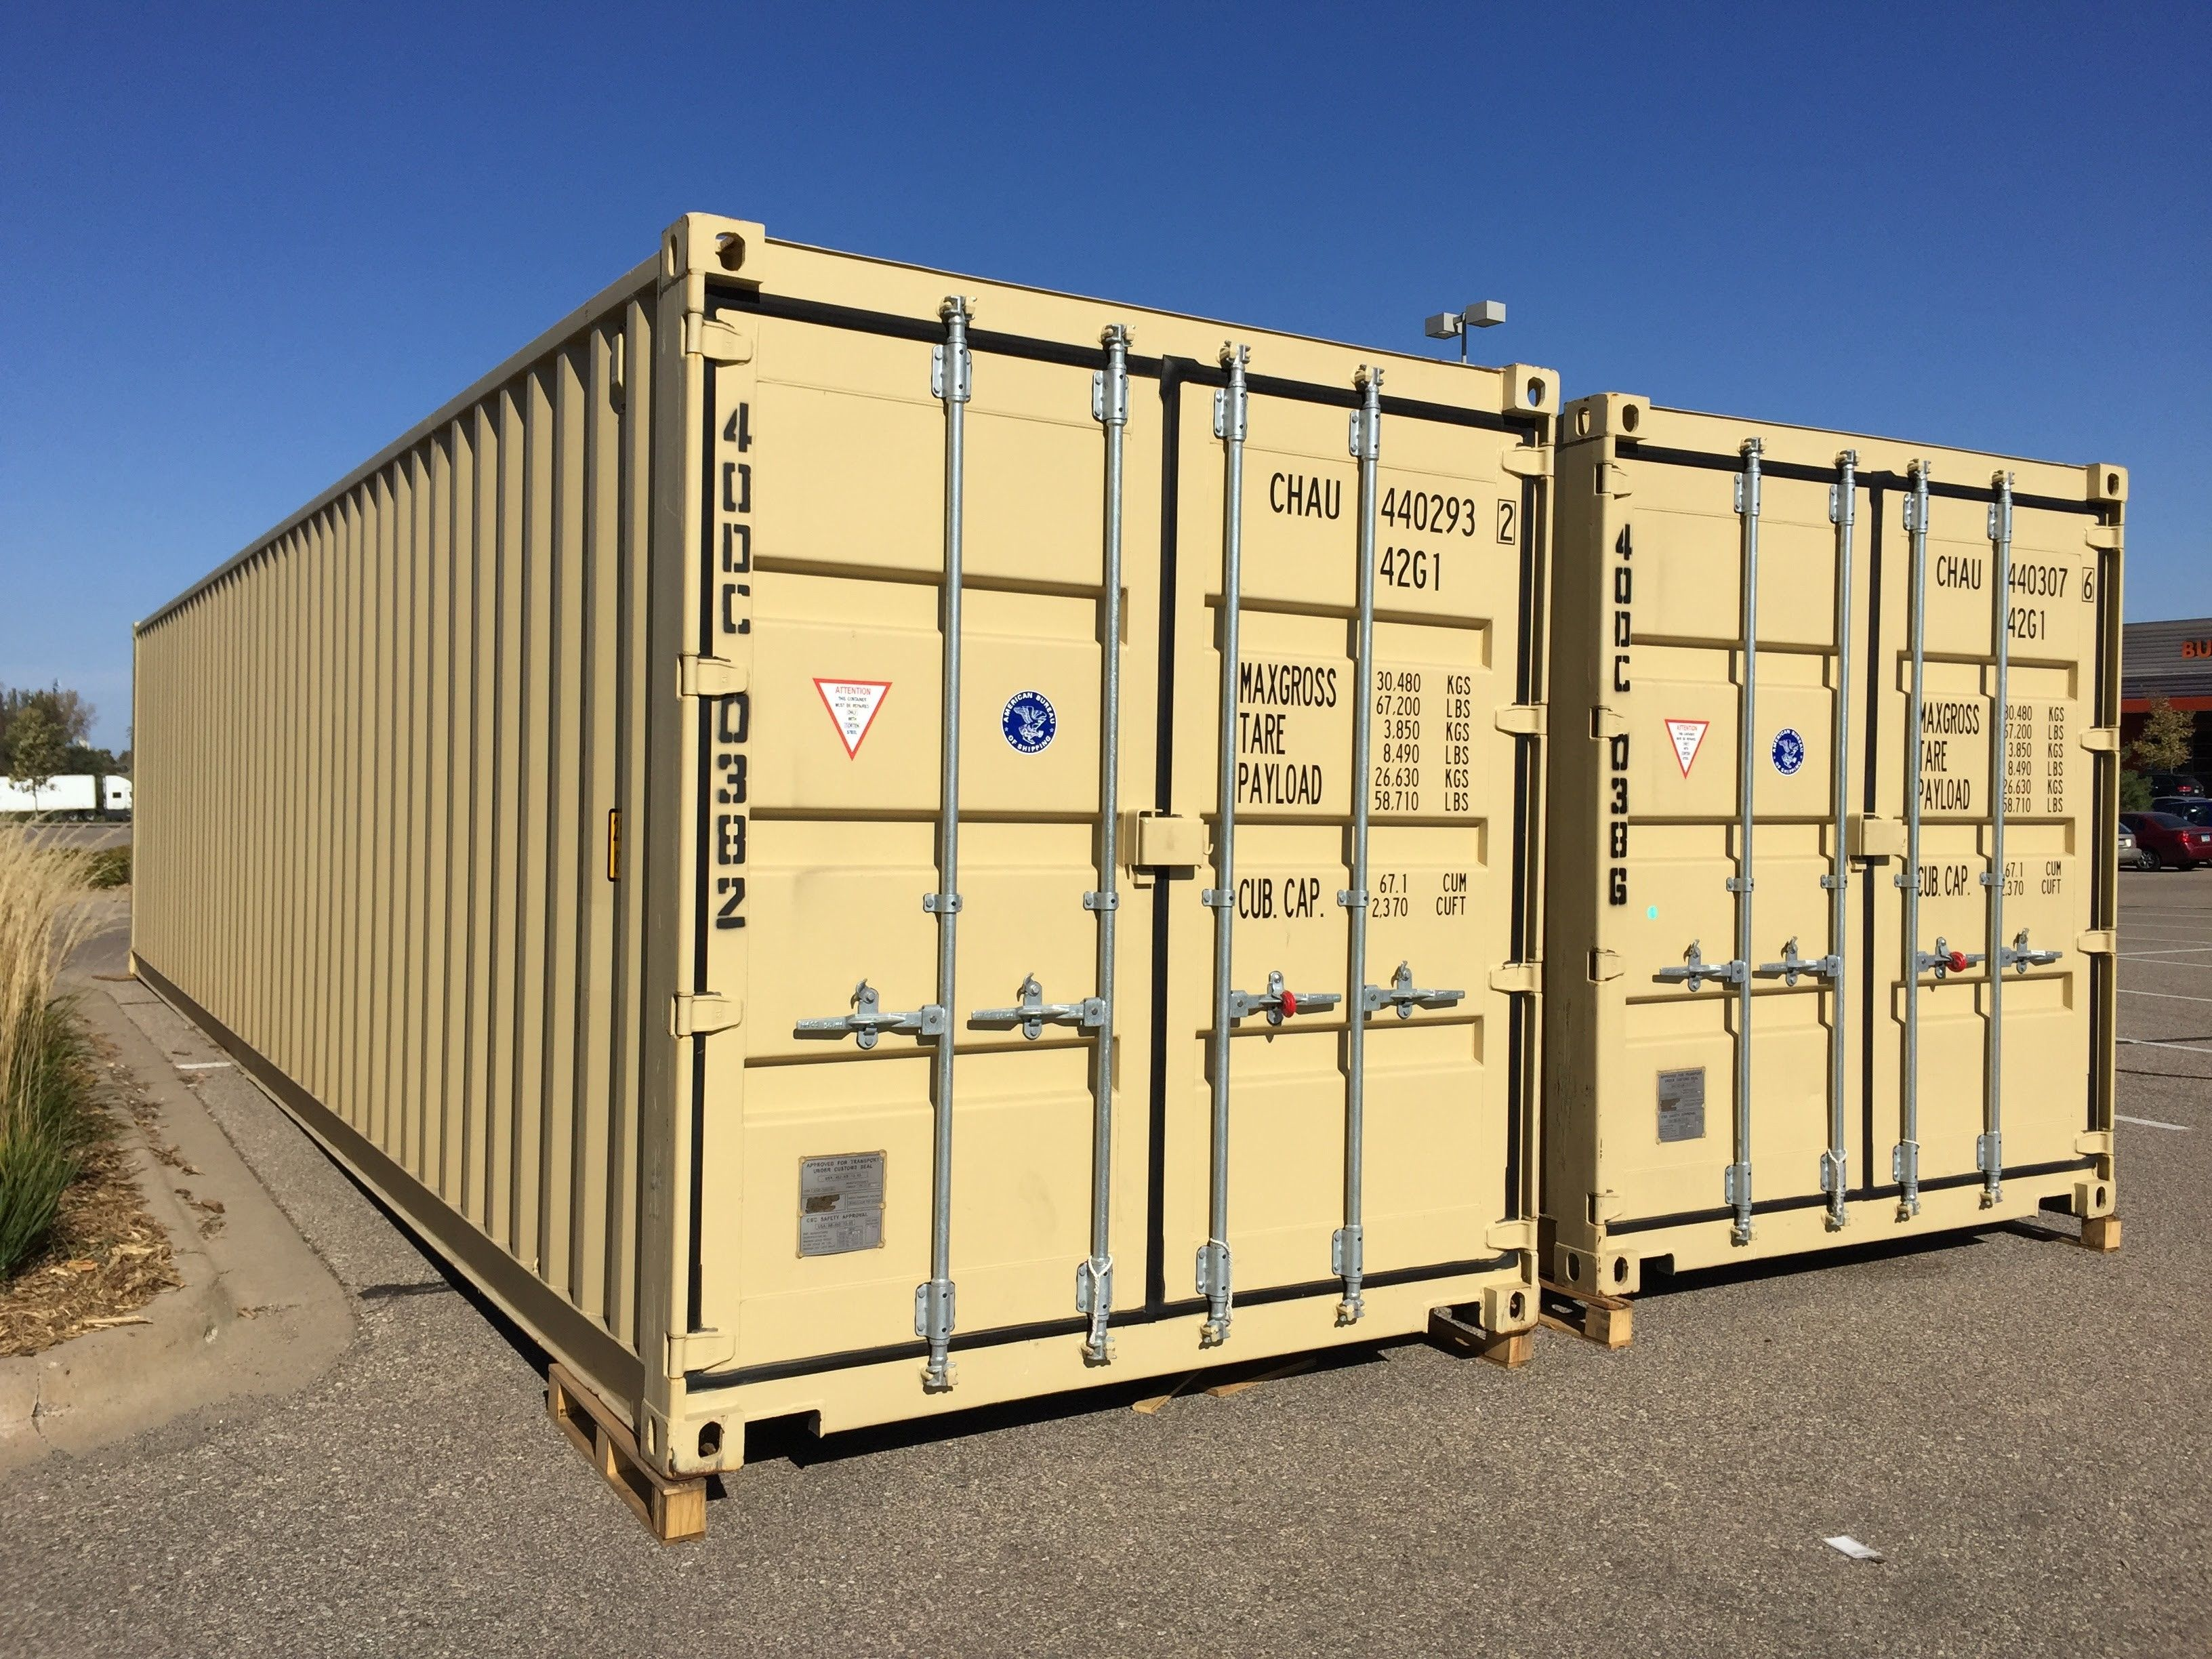 Buy Shipping Containers Online Used Ocean Cargo Conatiners For Sale Cargo Container Shipping Containers For Sale Shipping Container